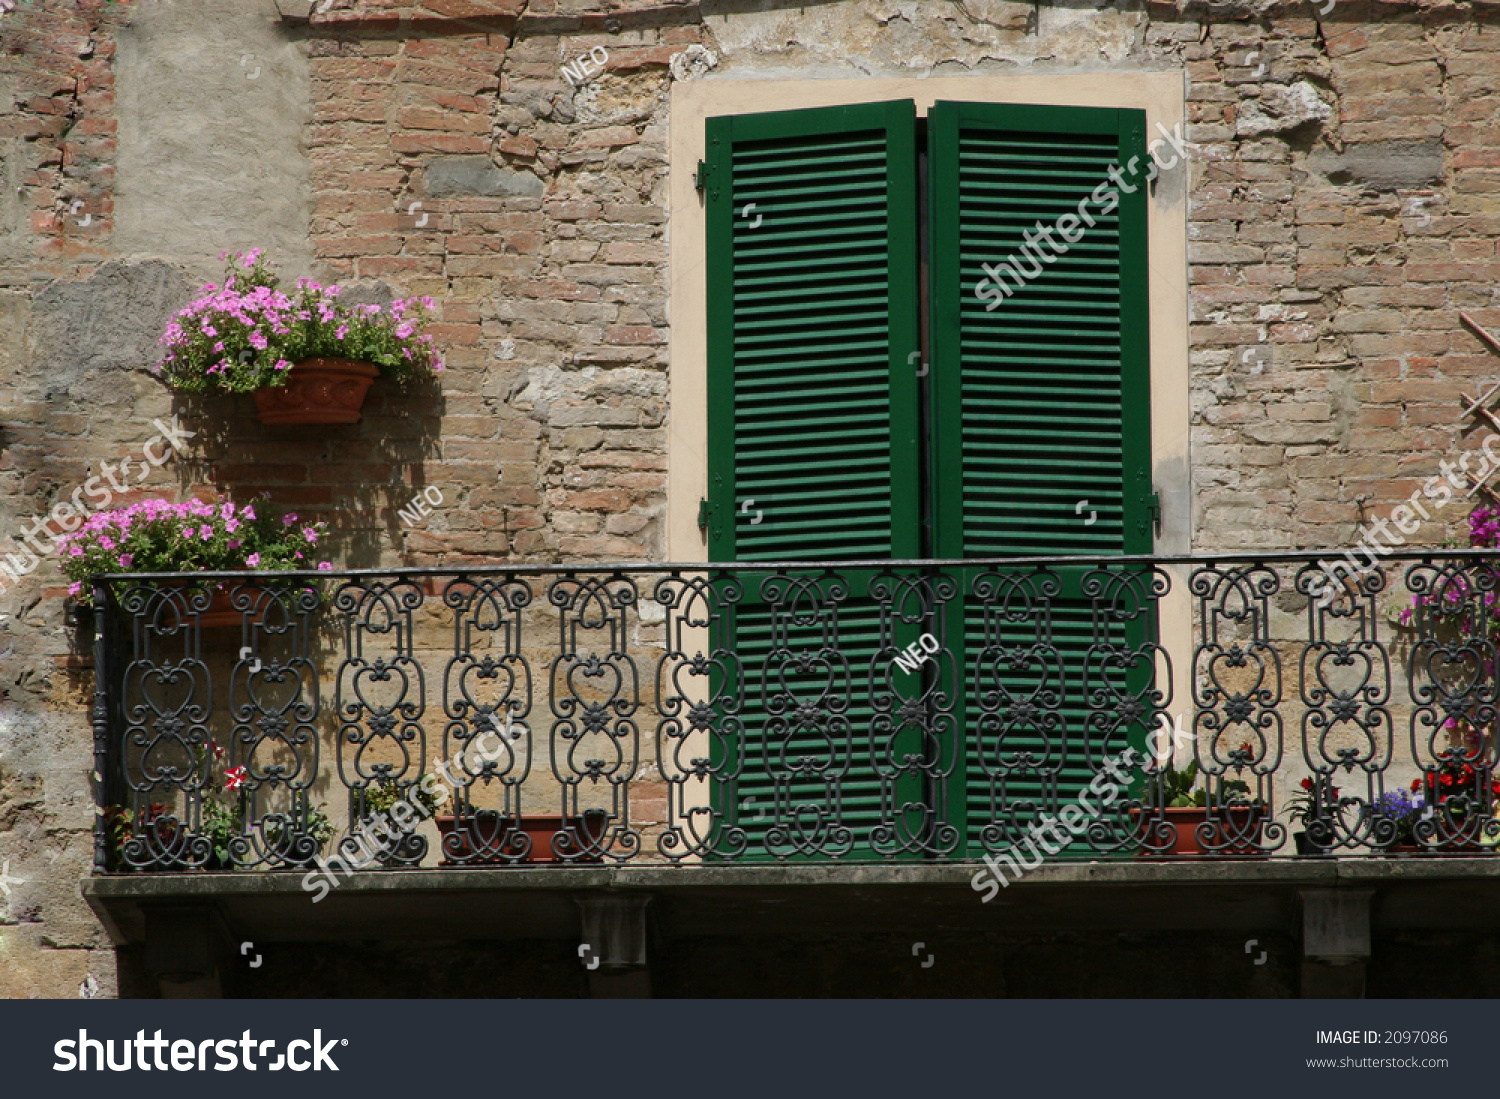 Italian balcony stock photo 2097086 shutterstock for Balcony in italian